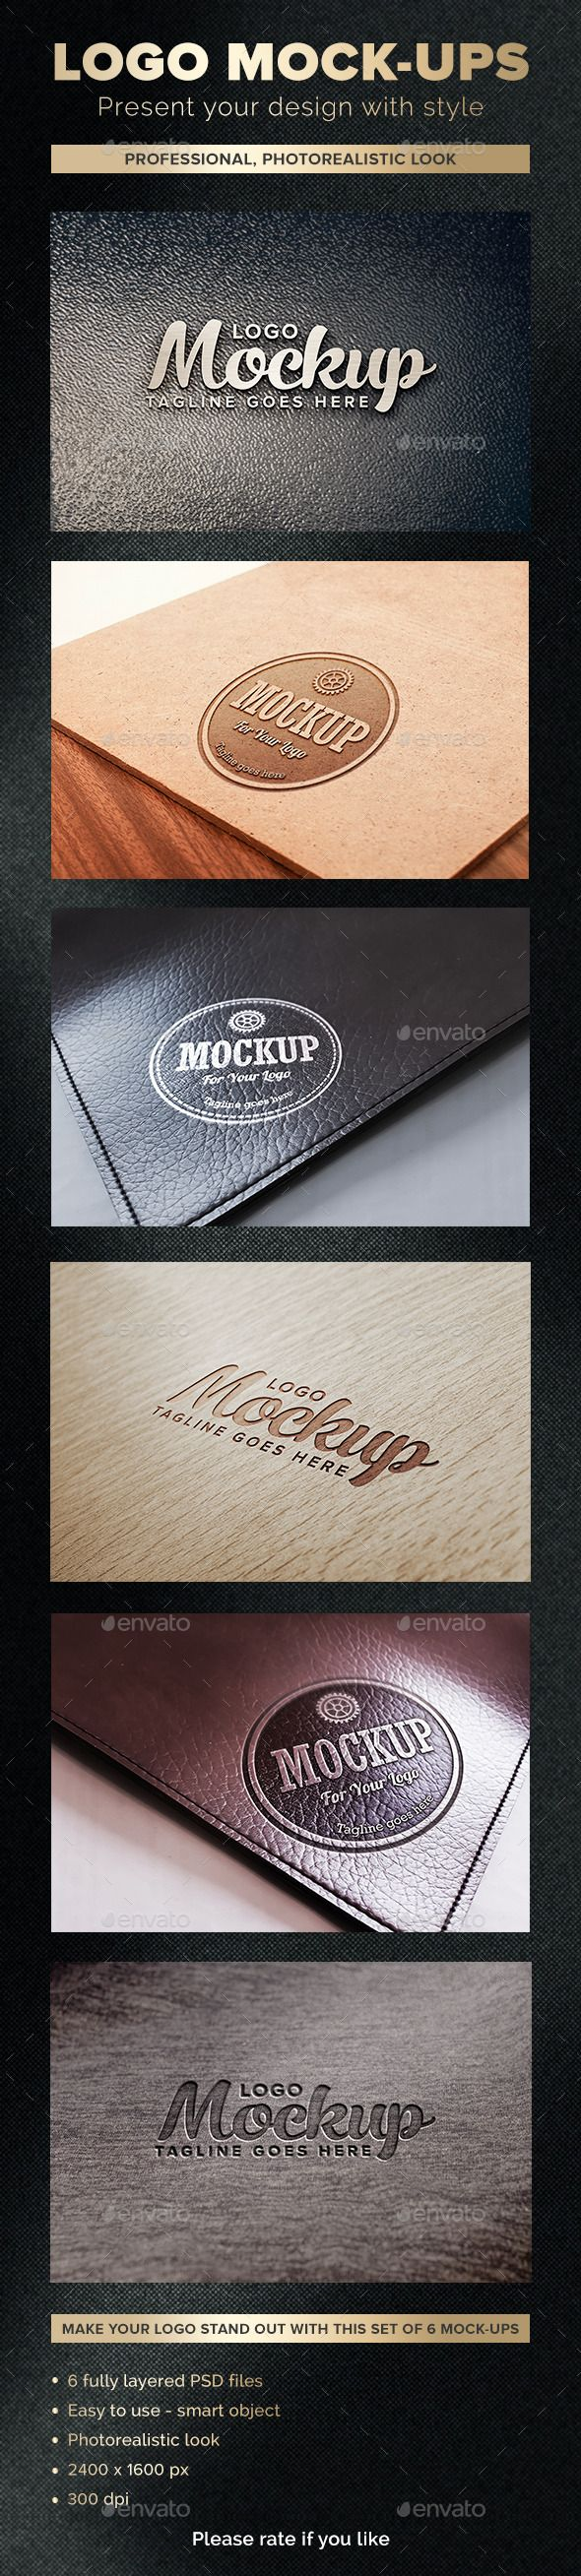 "Make your logo stand out with this set of 6 mock-ups! How to use it: Just double click on ""YOUR LOGO HERE"" layer, replace the content with your logo, and than click ""Save"". #logo #mockups"